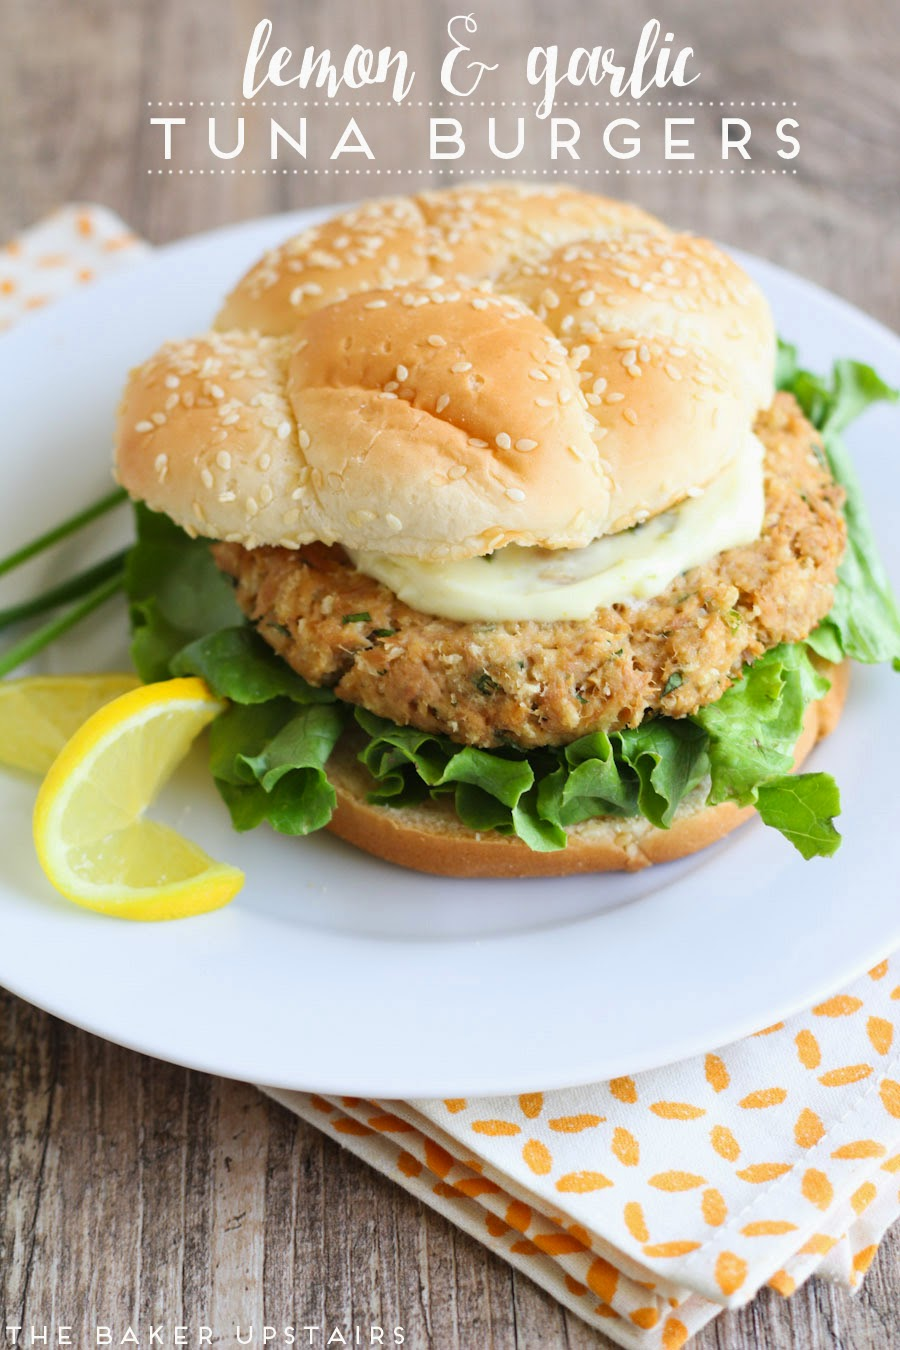 Lemon and garlic tuna burgers - so quick, healthy, and delicious!